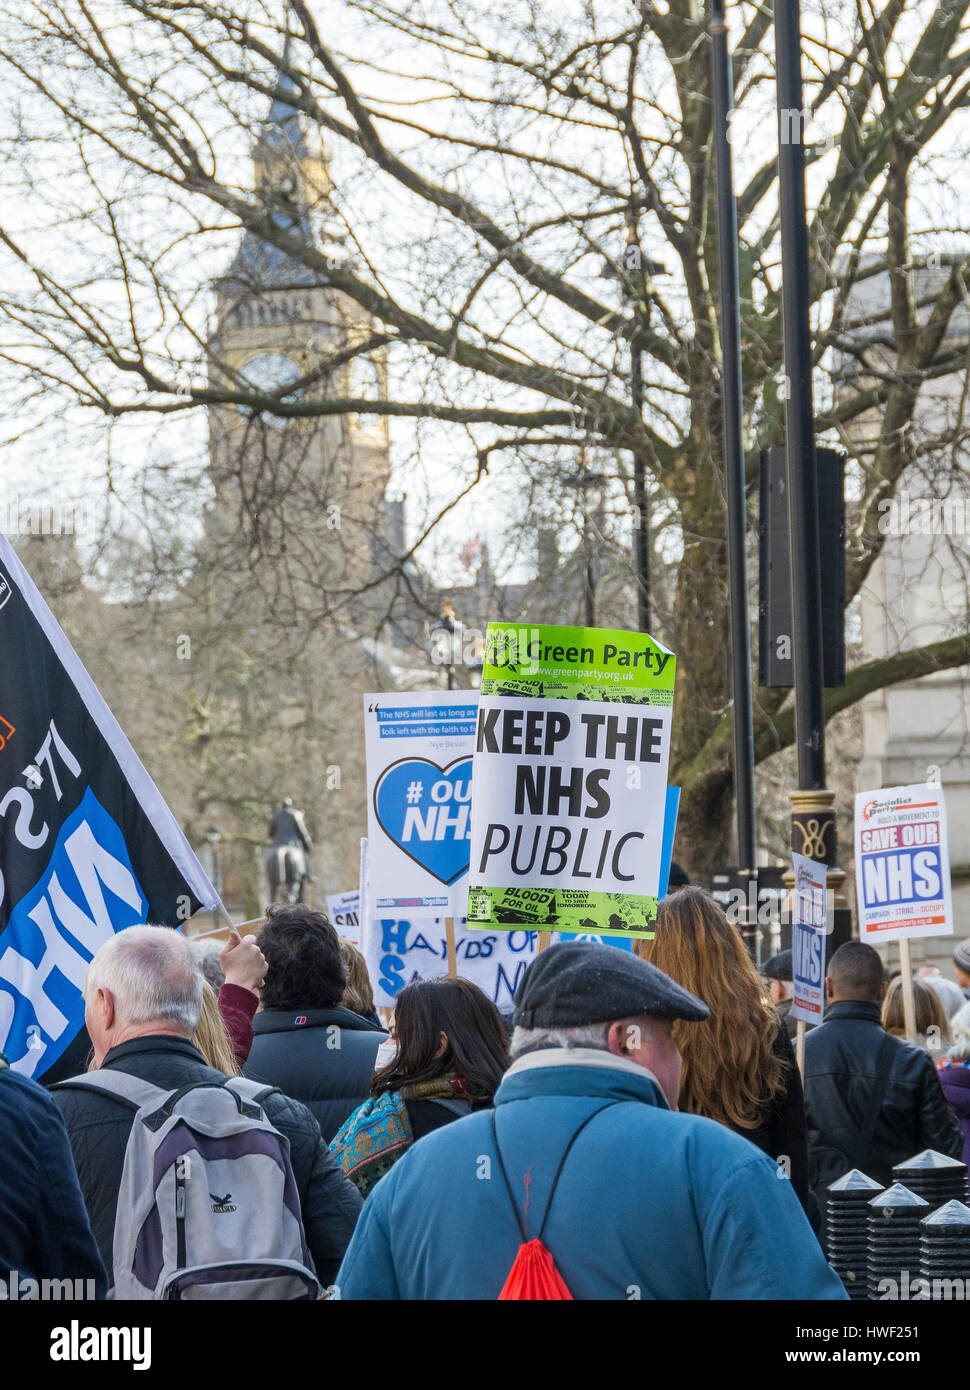 Thousands march in protest over plans for 'unprecedented' cuts to the NHS in London, England, UK.  4th March 2017 Stock Photo